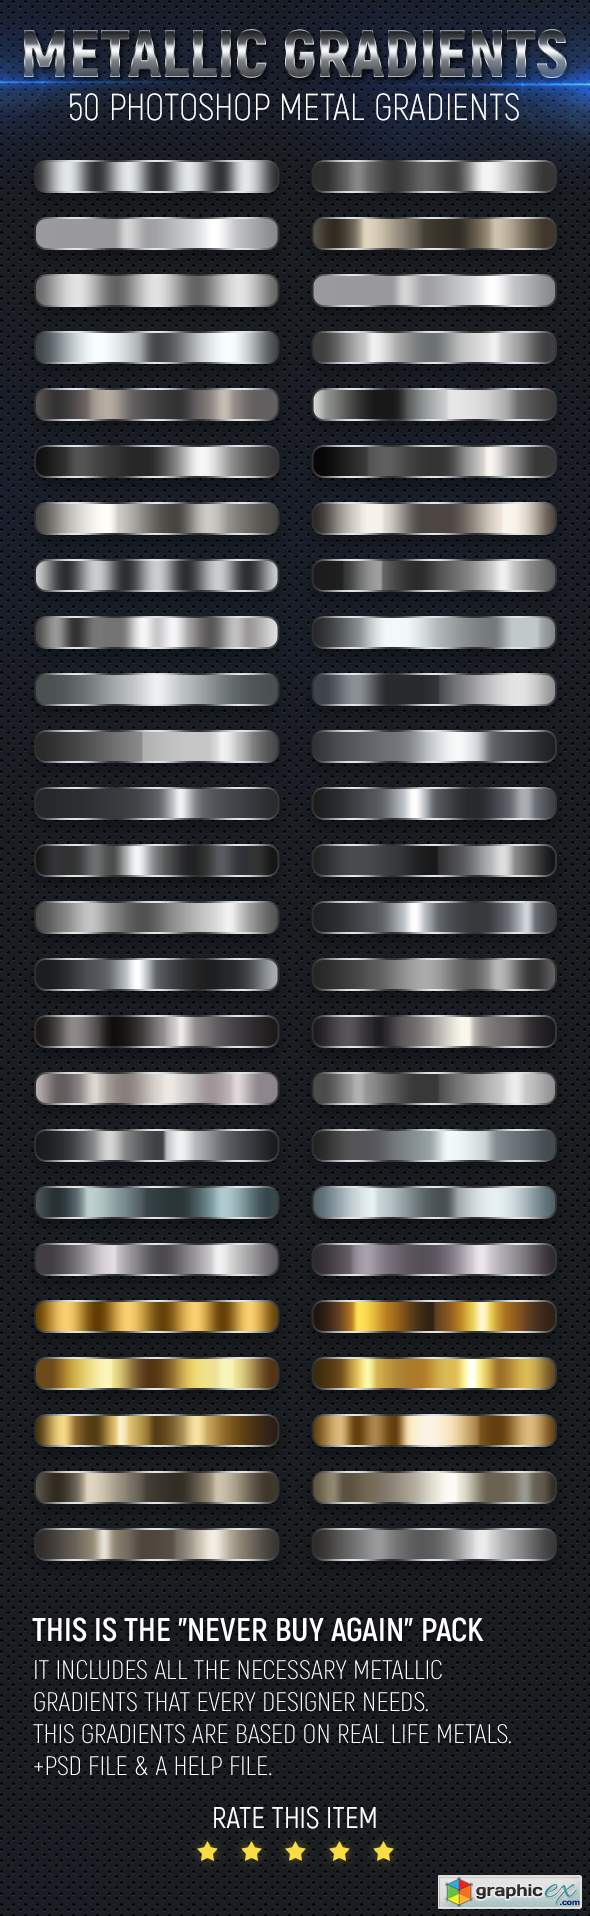 50 Metal Gradients